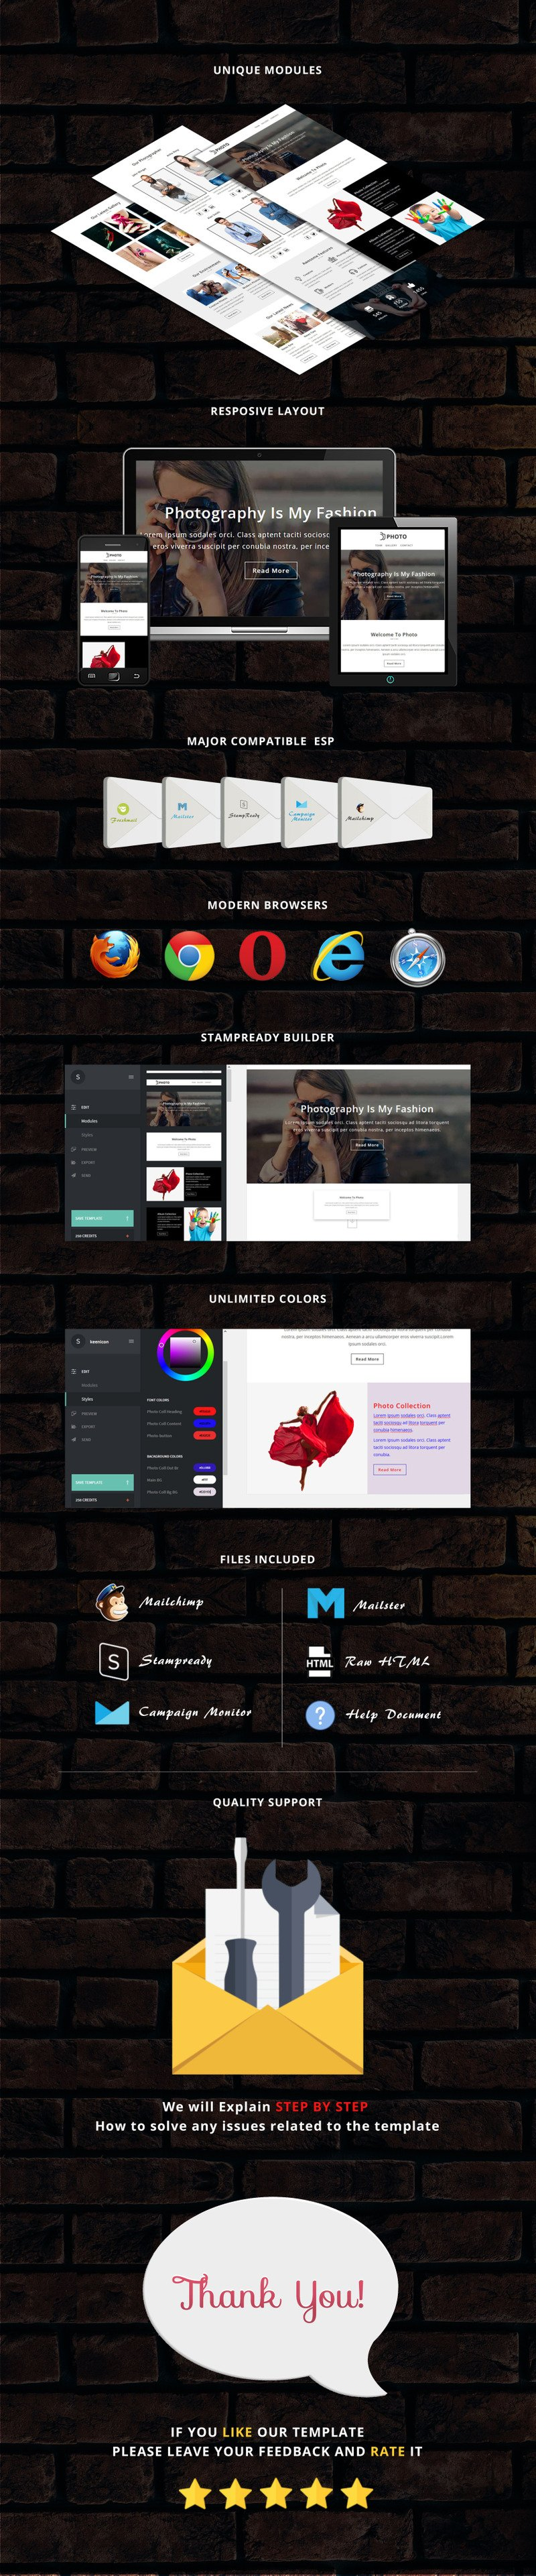 Photo - Responsive Email Newsletter Template - Features Image 1